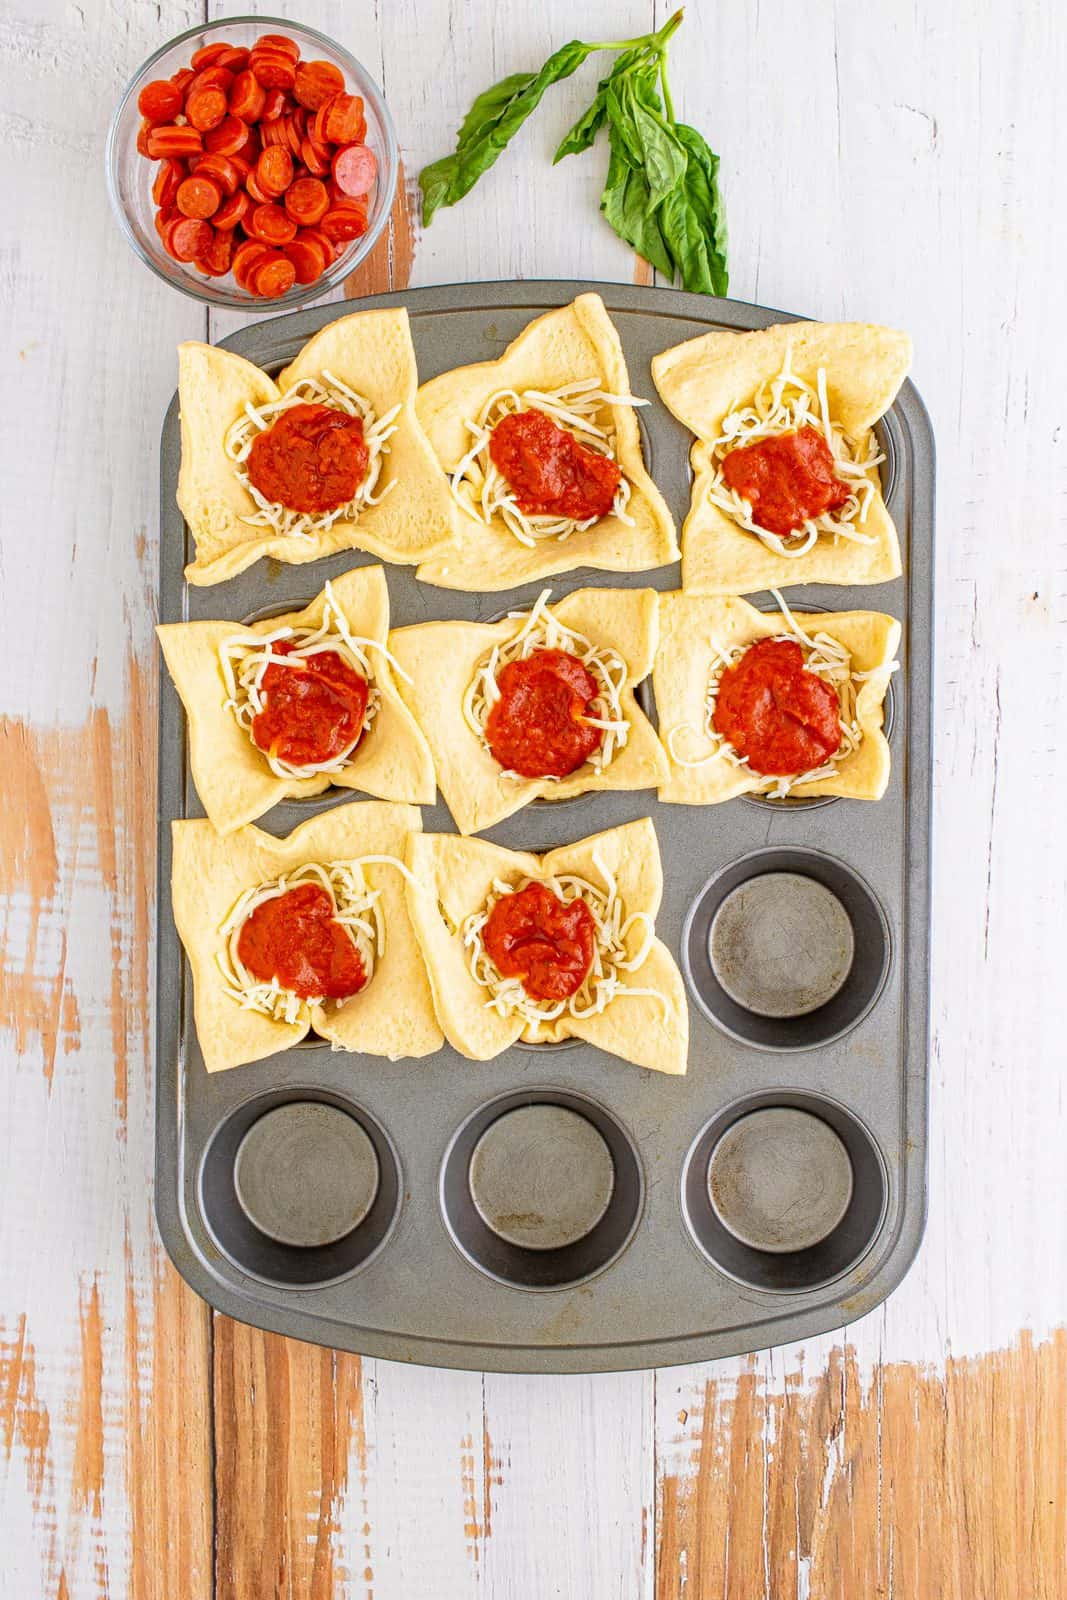 Pizza sauce added on top of cheese in muffin tin.